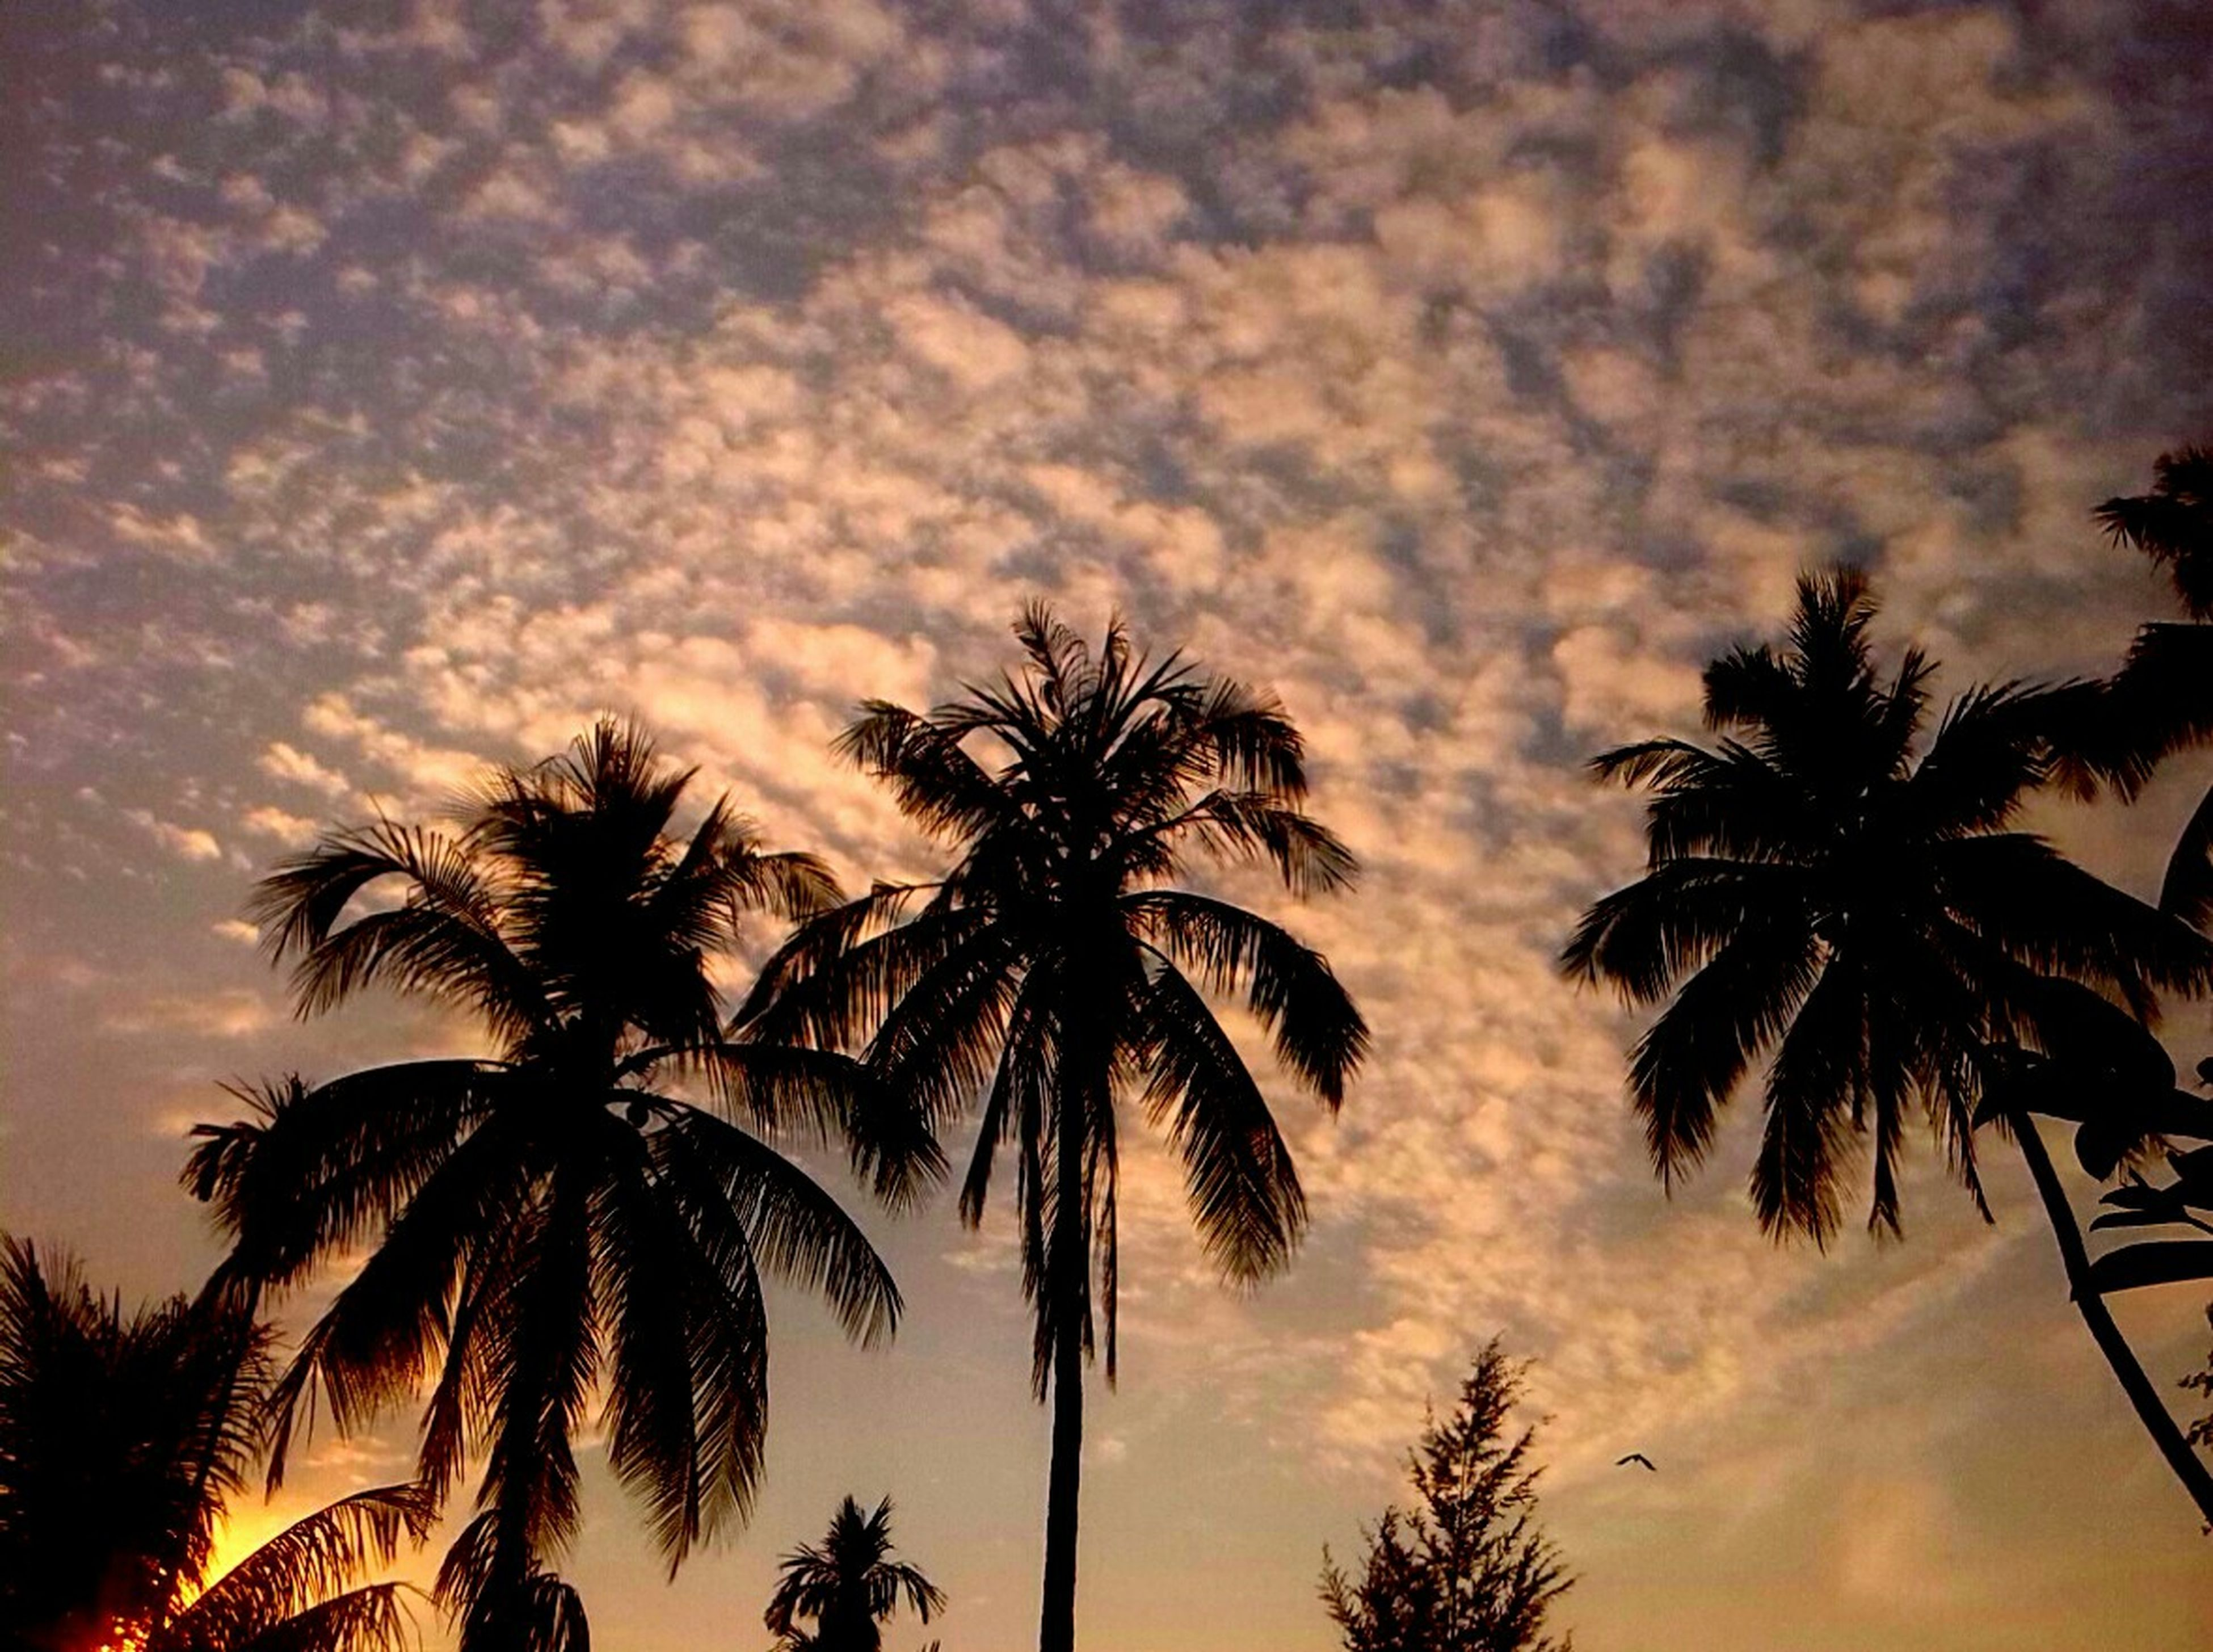 palm tree, silhouette, tree, sky, low angle view, sunset, tranquility, beauty in nature, cloud - sky, scenics, nature, growth, tranquil scene, tree trunk, coconut palm tree, cloud, dusk, cloudy, palm frond, idyllic